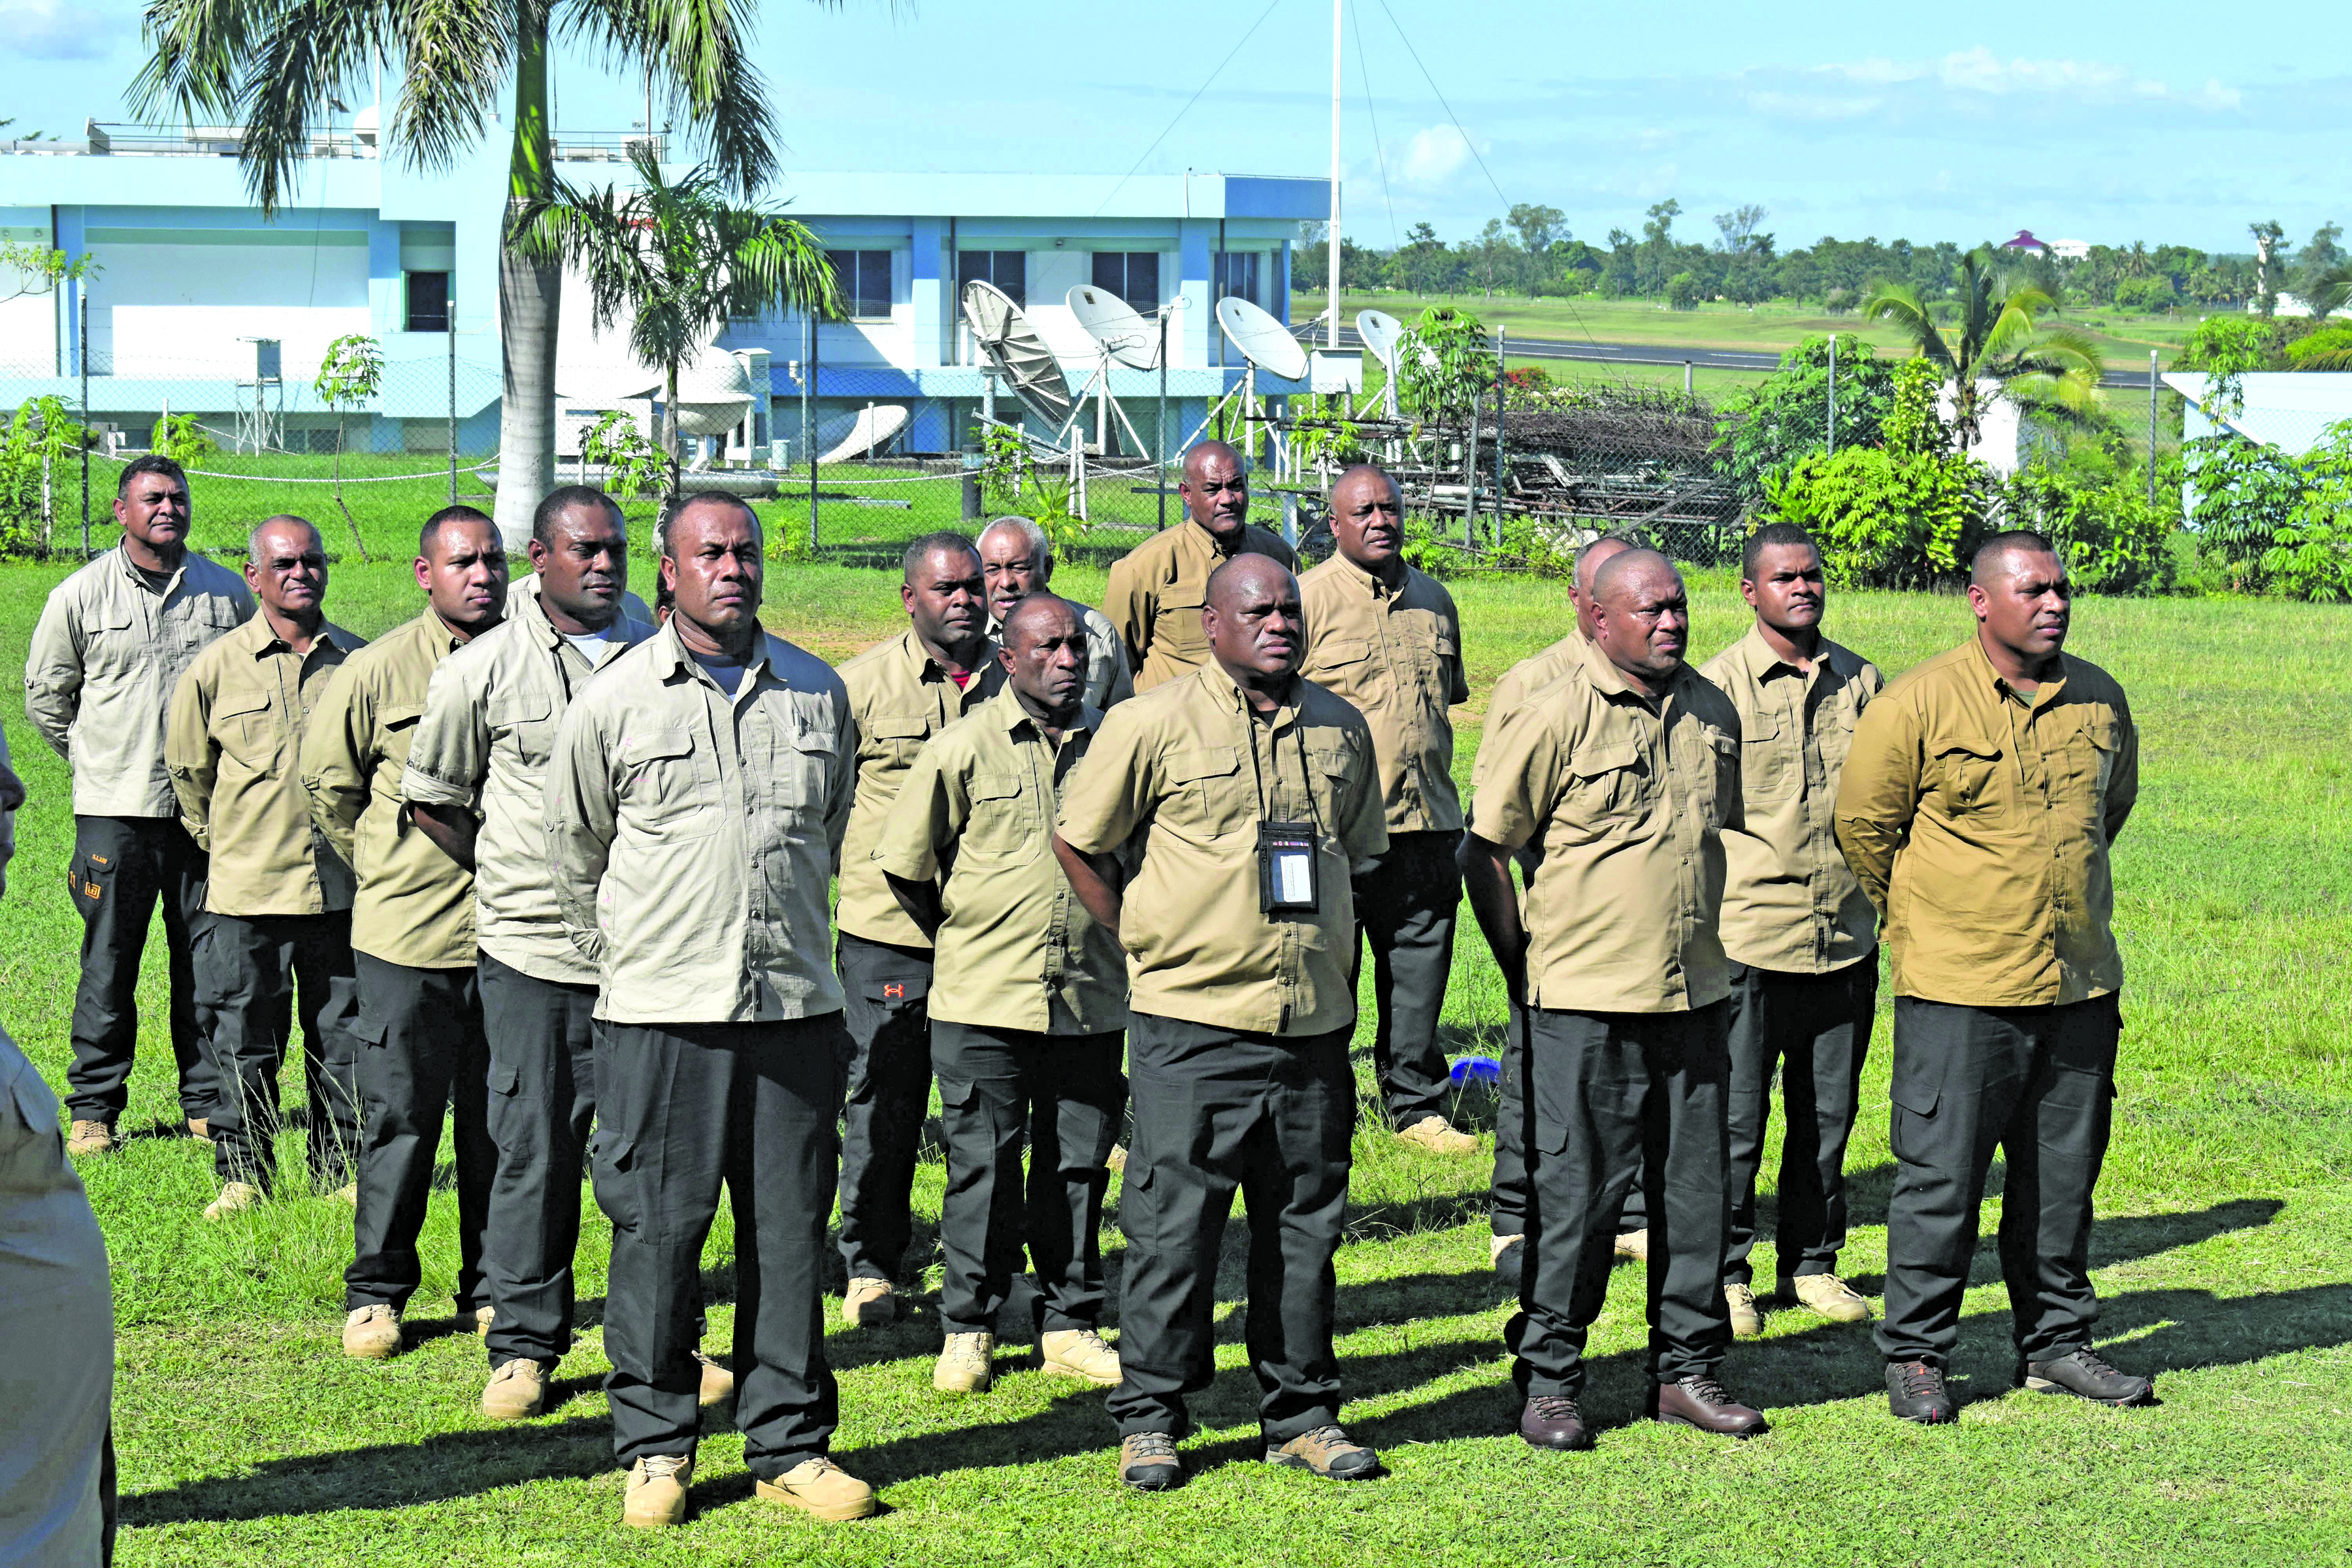 Republic of the Fiji Military Forces 23 personnel at Nadi Camp on 5 January 2017. Photo: Lusiana Banuve